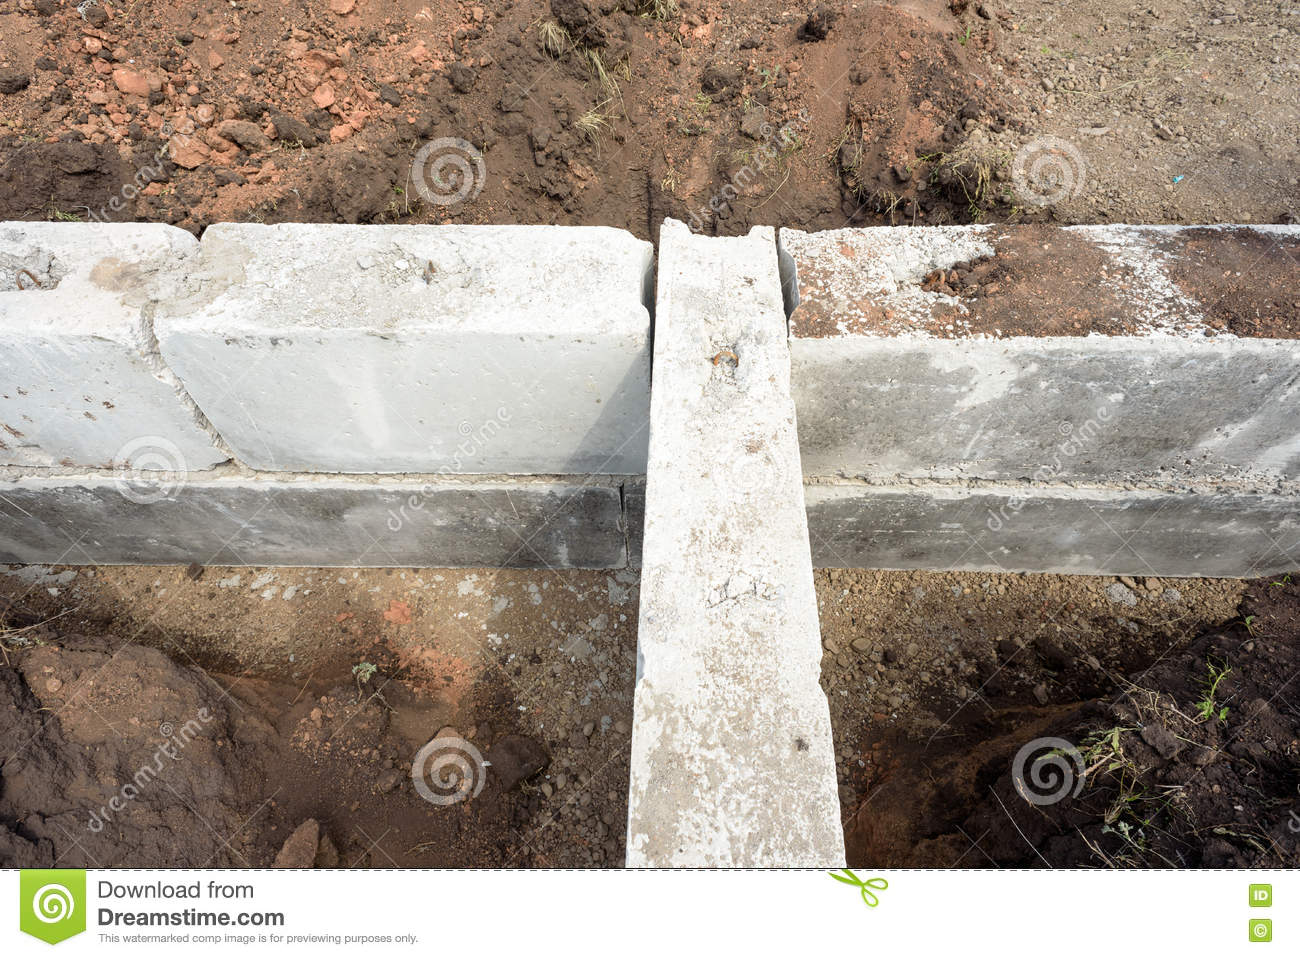 Concrete building block house foundations in earth stock for Building a concrete block house